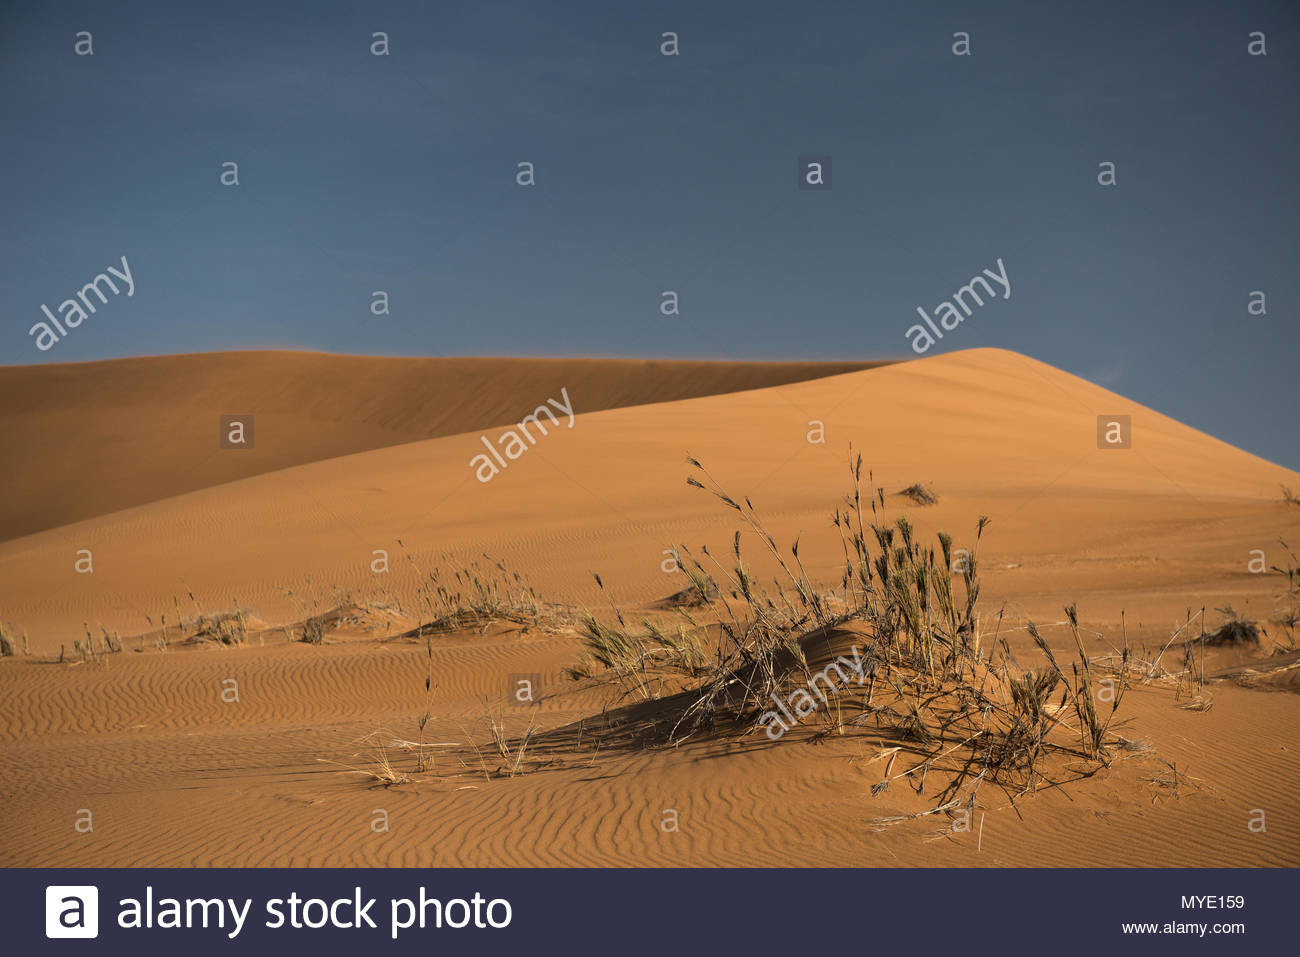 Sparse grasses grow by a sand dune in the desert. - Stock Image